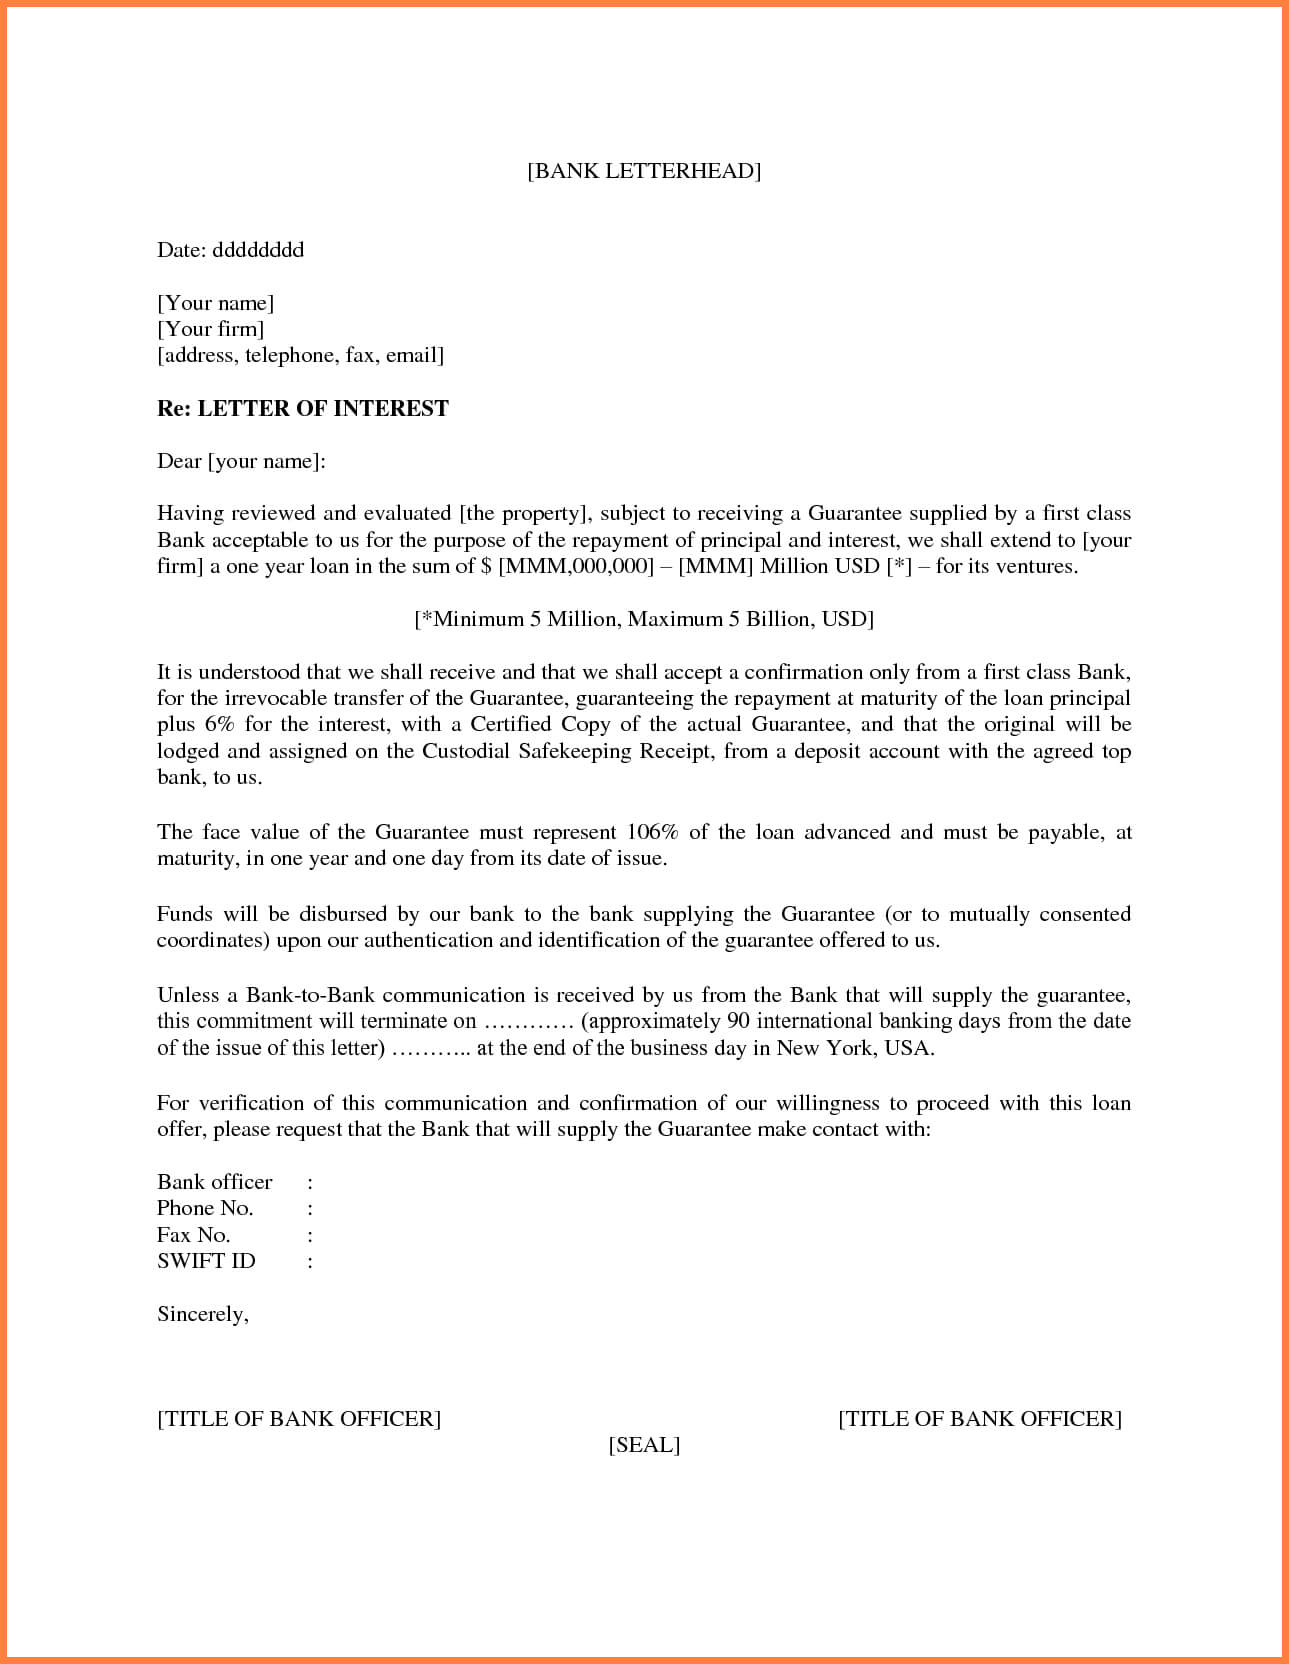 011 Letter Of Interest Template Microsoft Word Sweep11 Ideas Pertaining To Letter Of Interest Template Microsoft Word